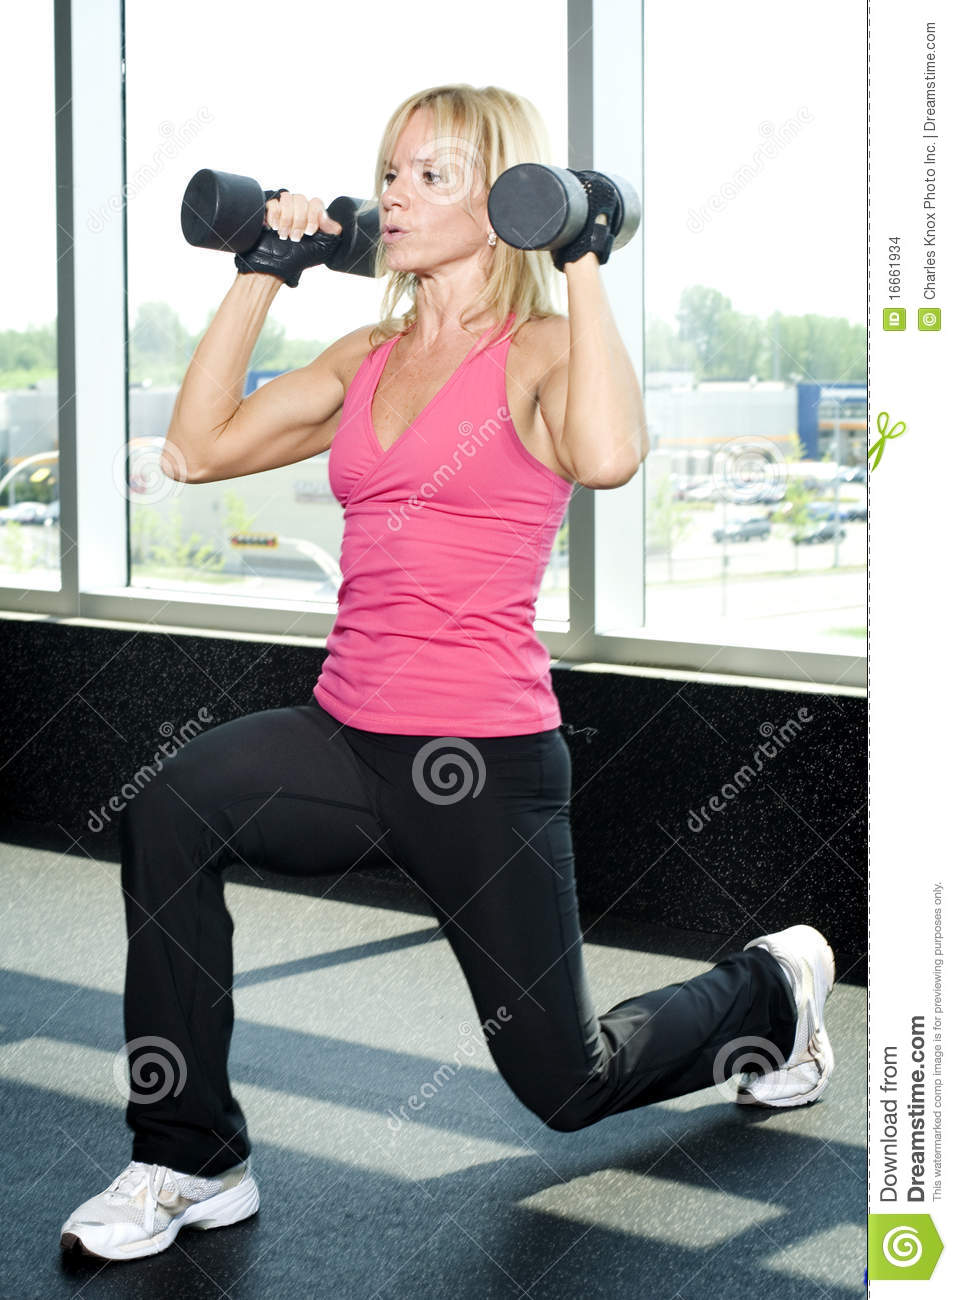 Middle Aged Woman Working Out With Weights Stock Images ...